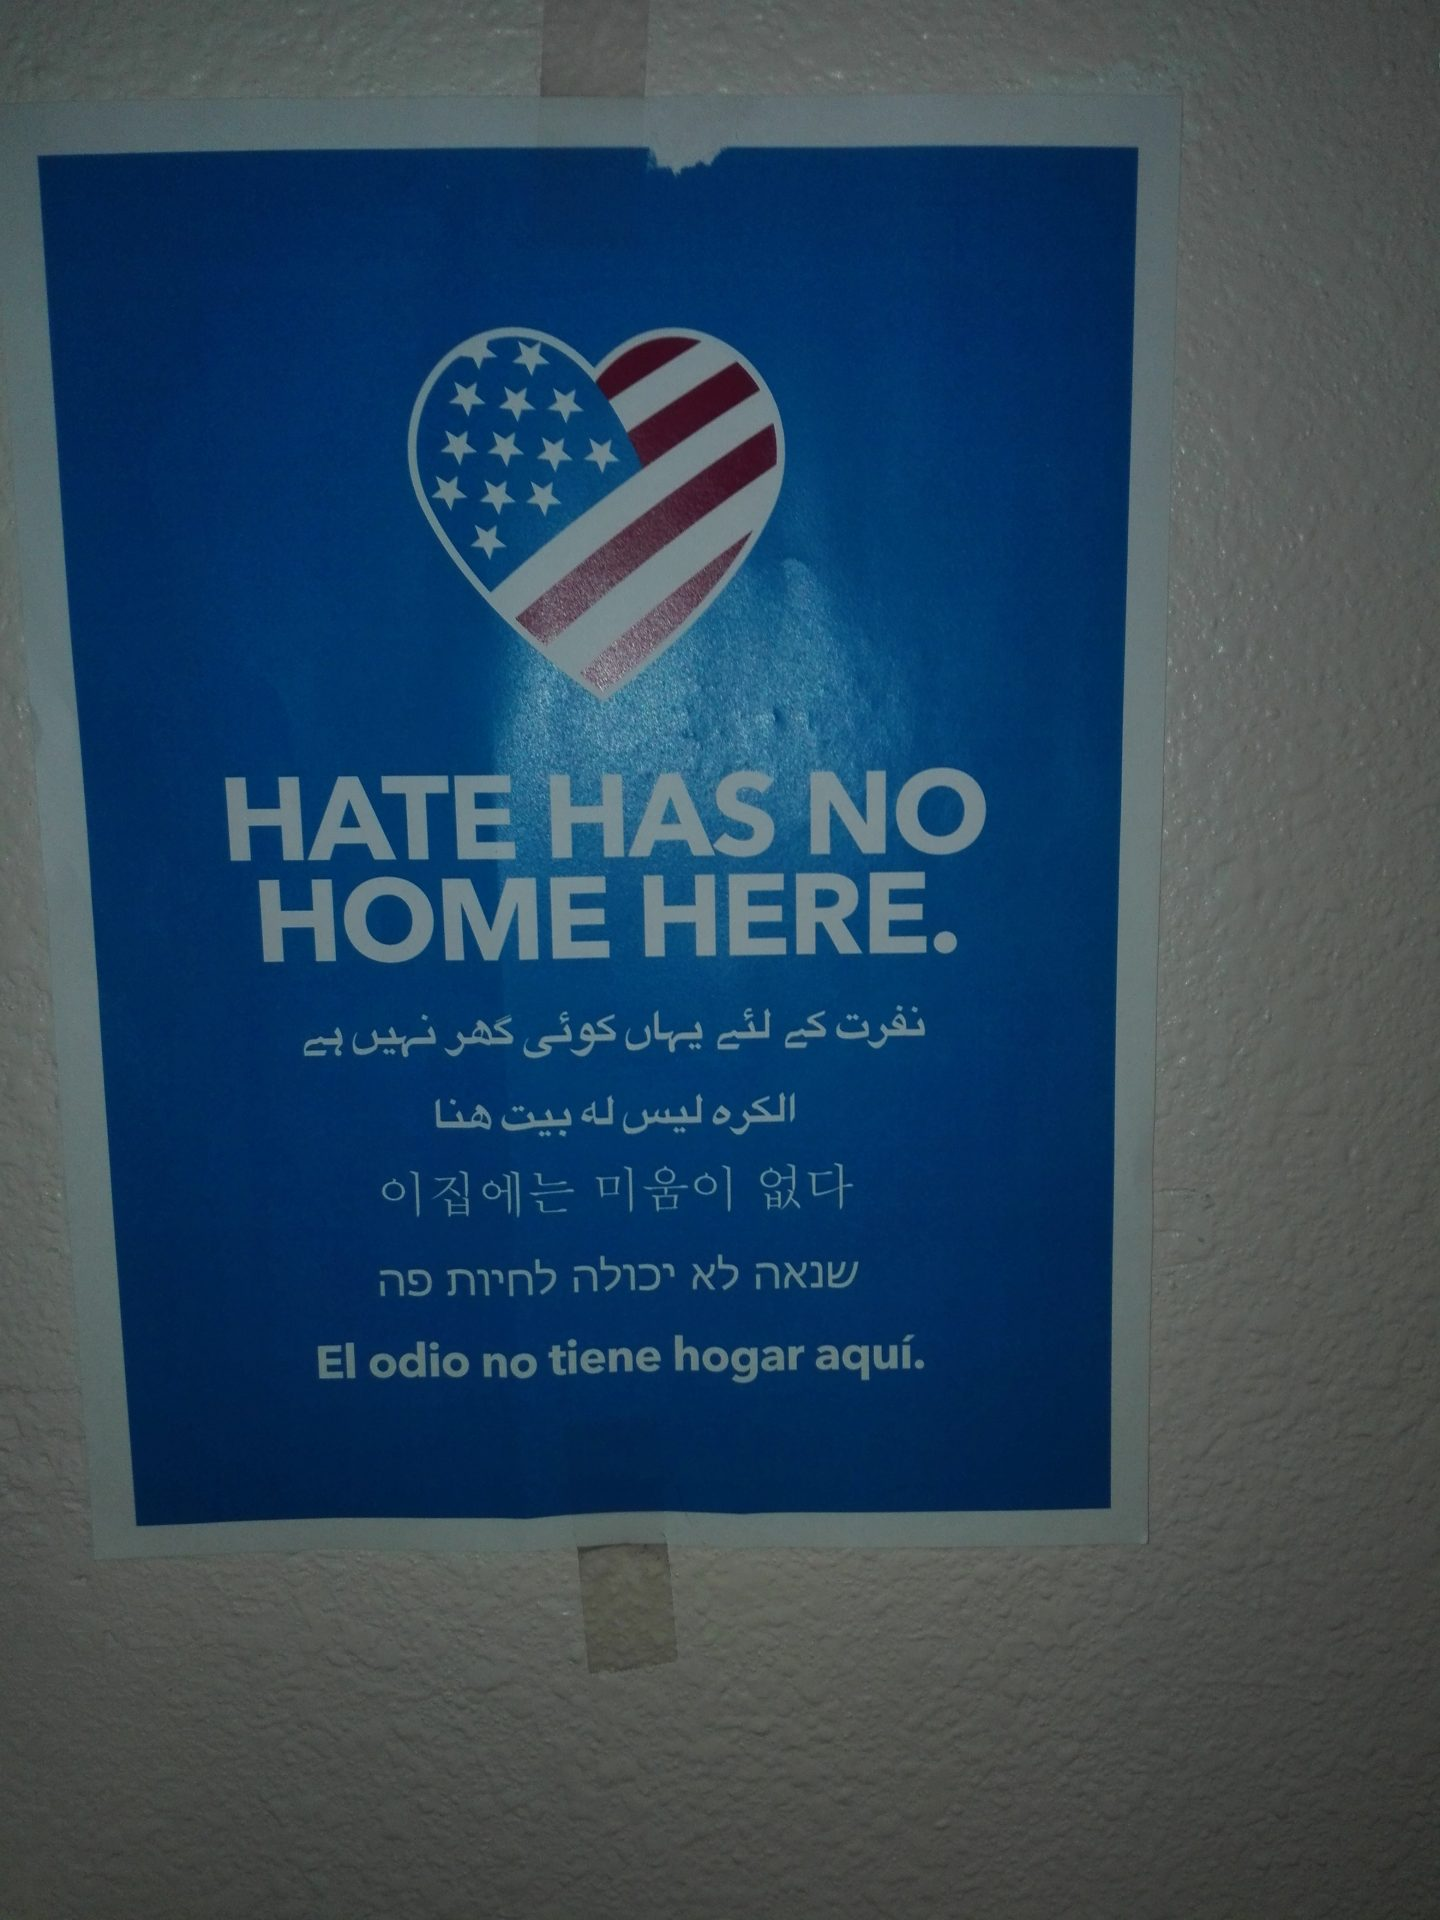 "U.S flag inside a heart shaped design and wording below saying ""Hate has no home here""."